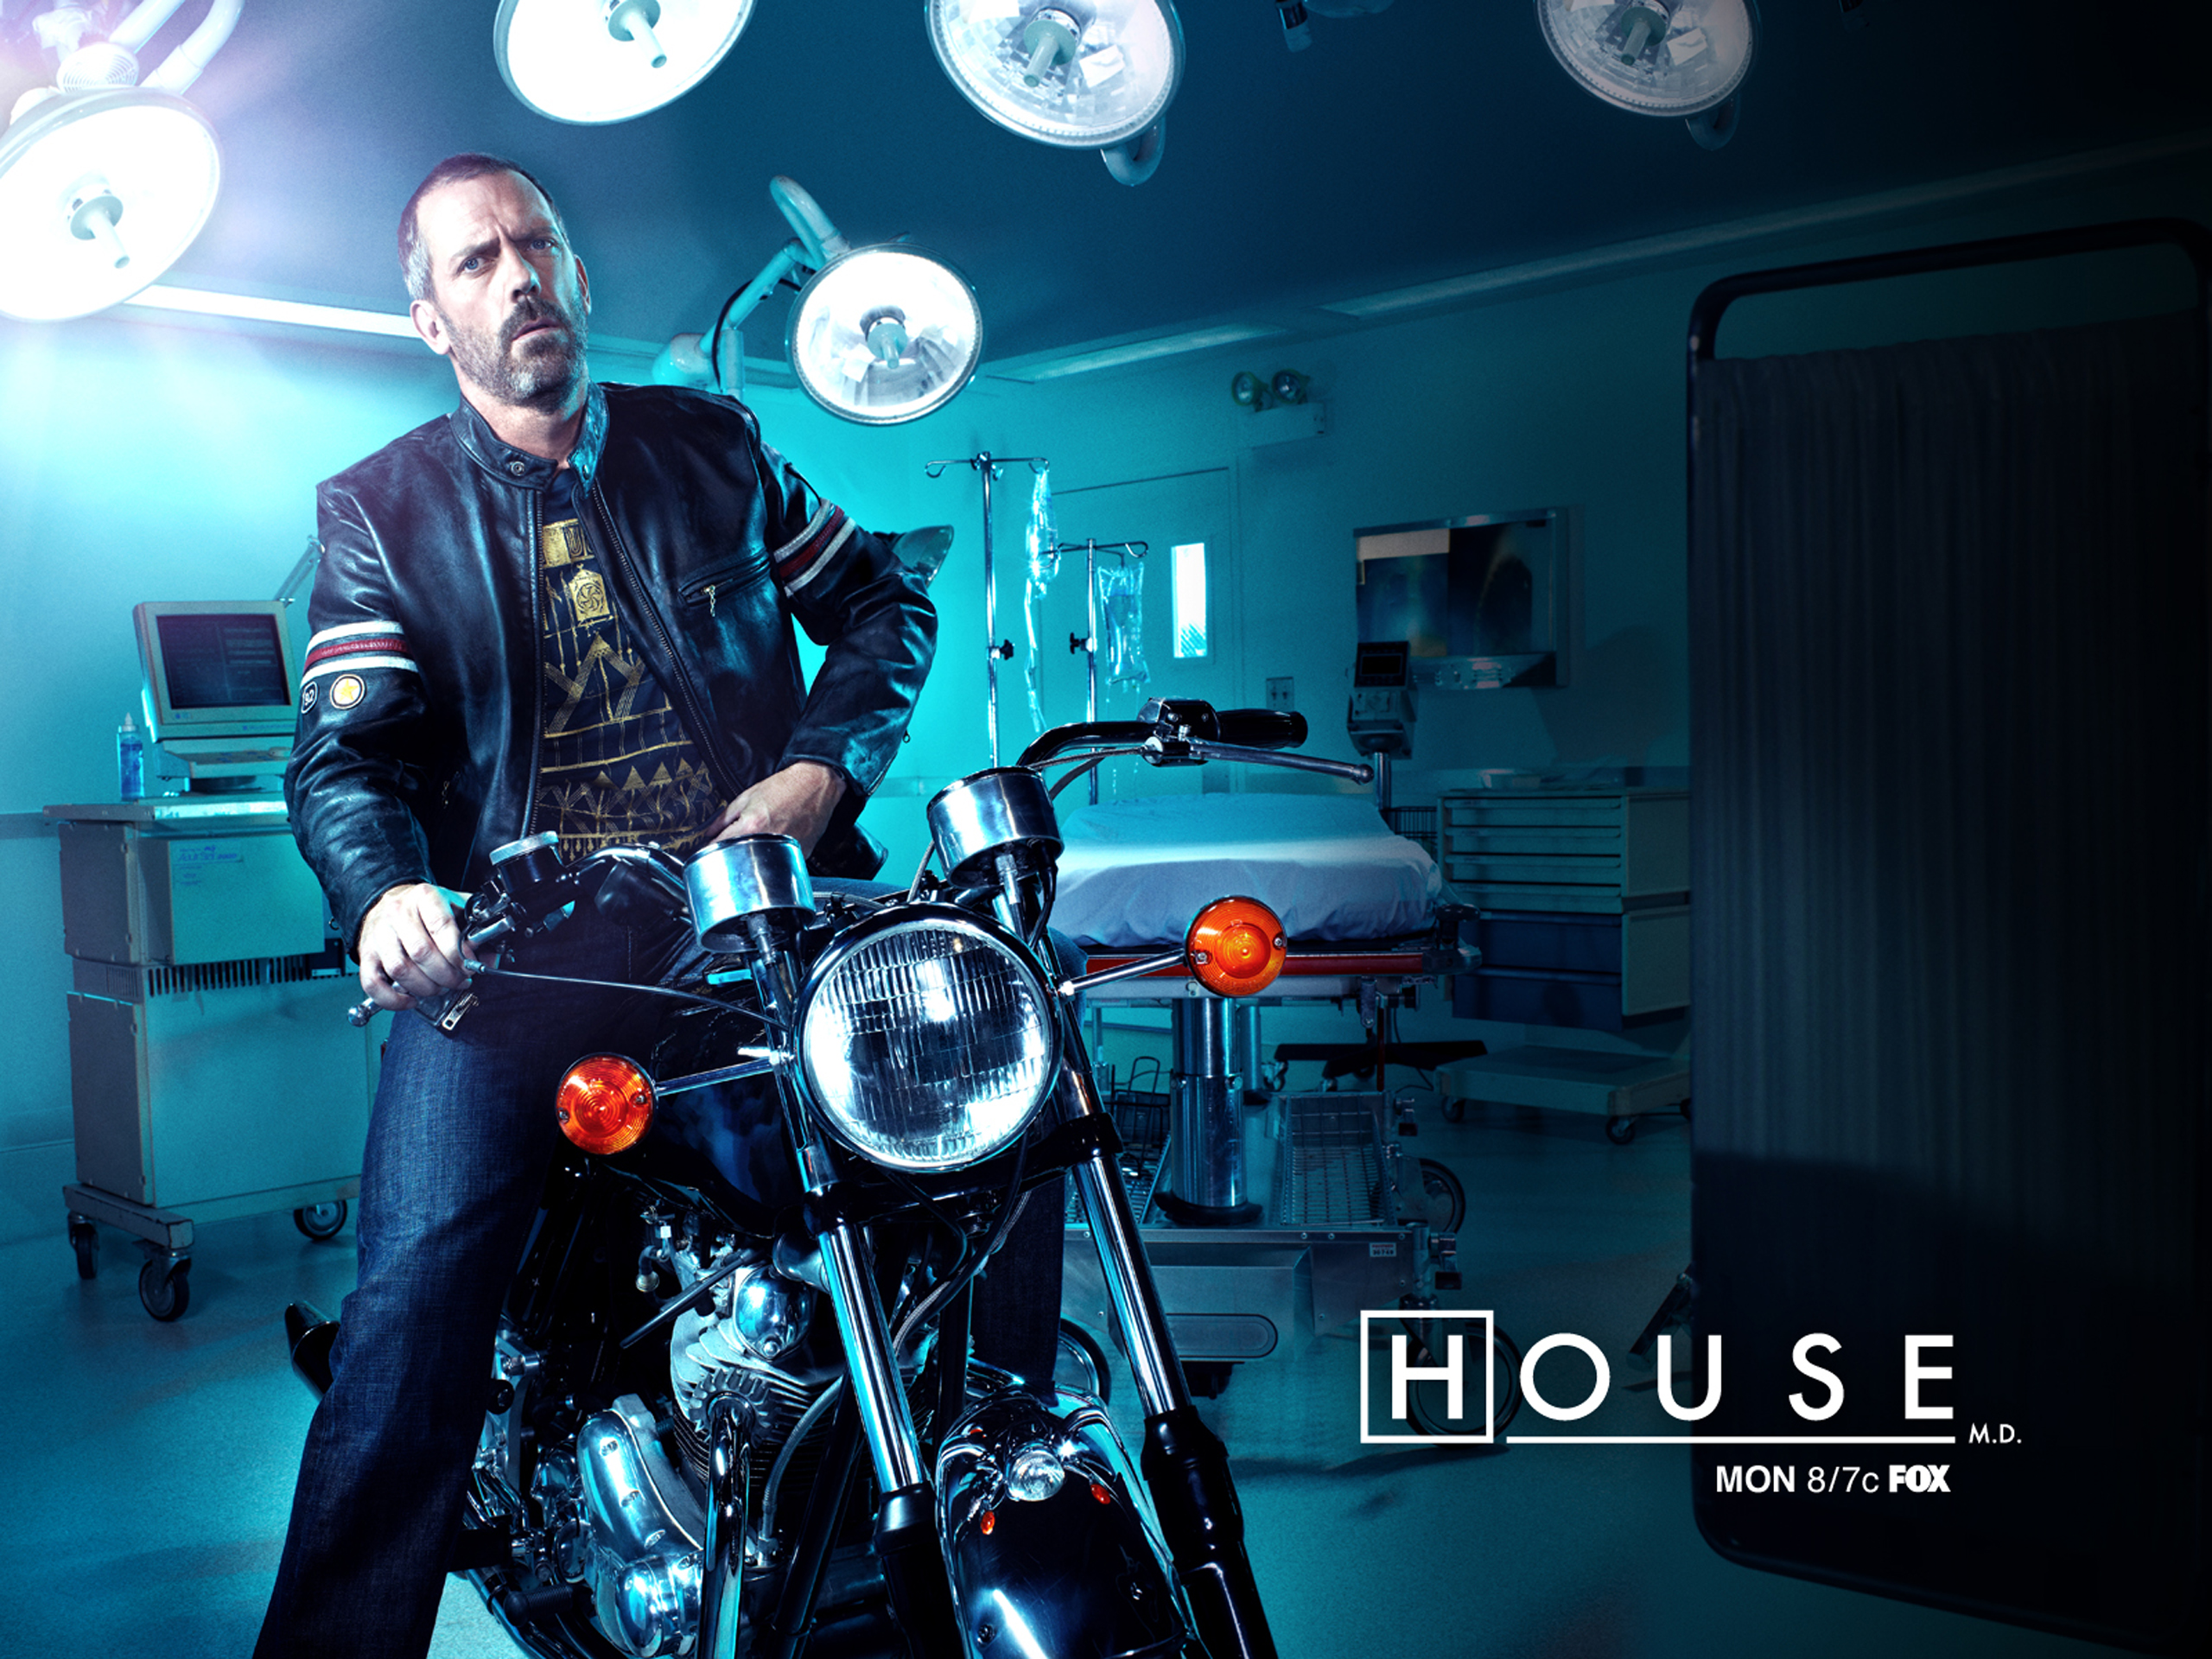 Dr. Gregory House - House M.D.